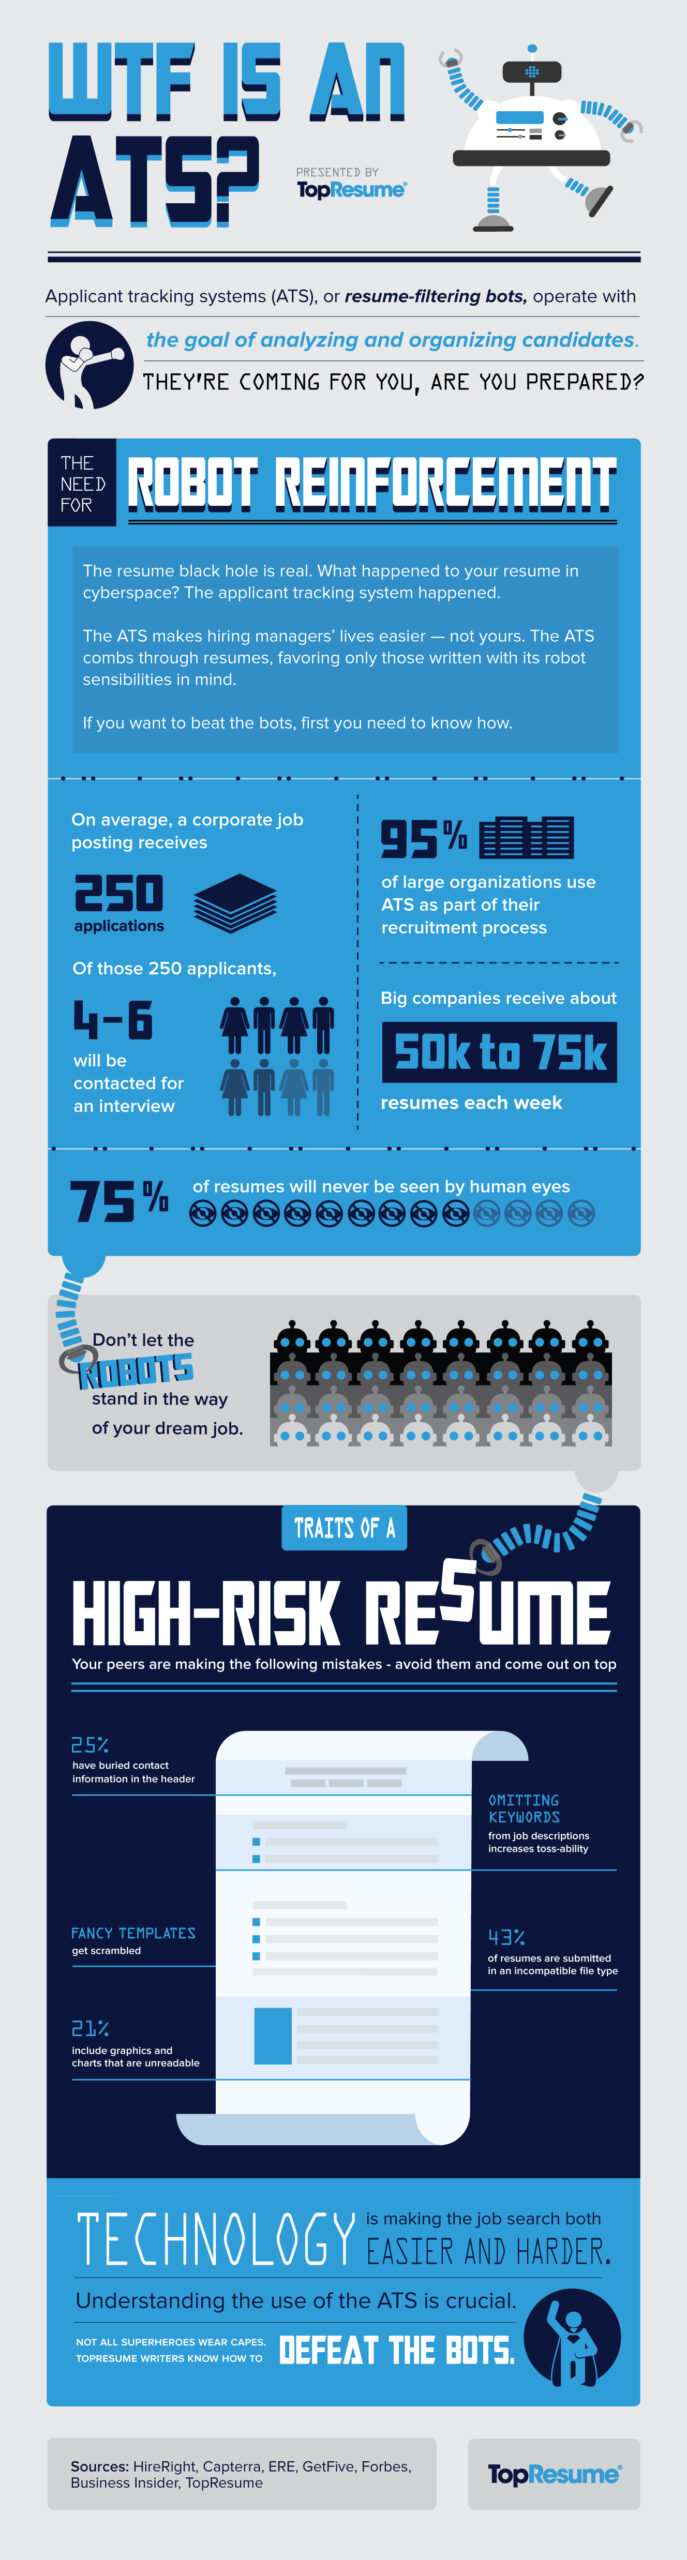 an ats to write resume beat the applicant tracking system topresume search optimization Resume Resume Search Optimization